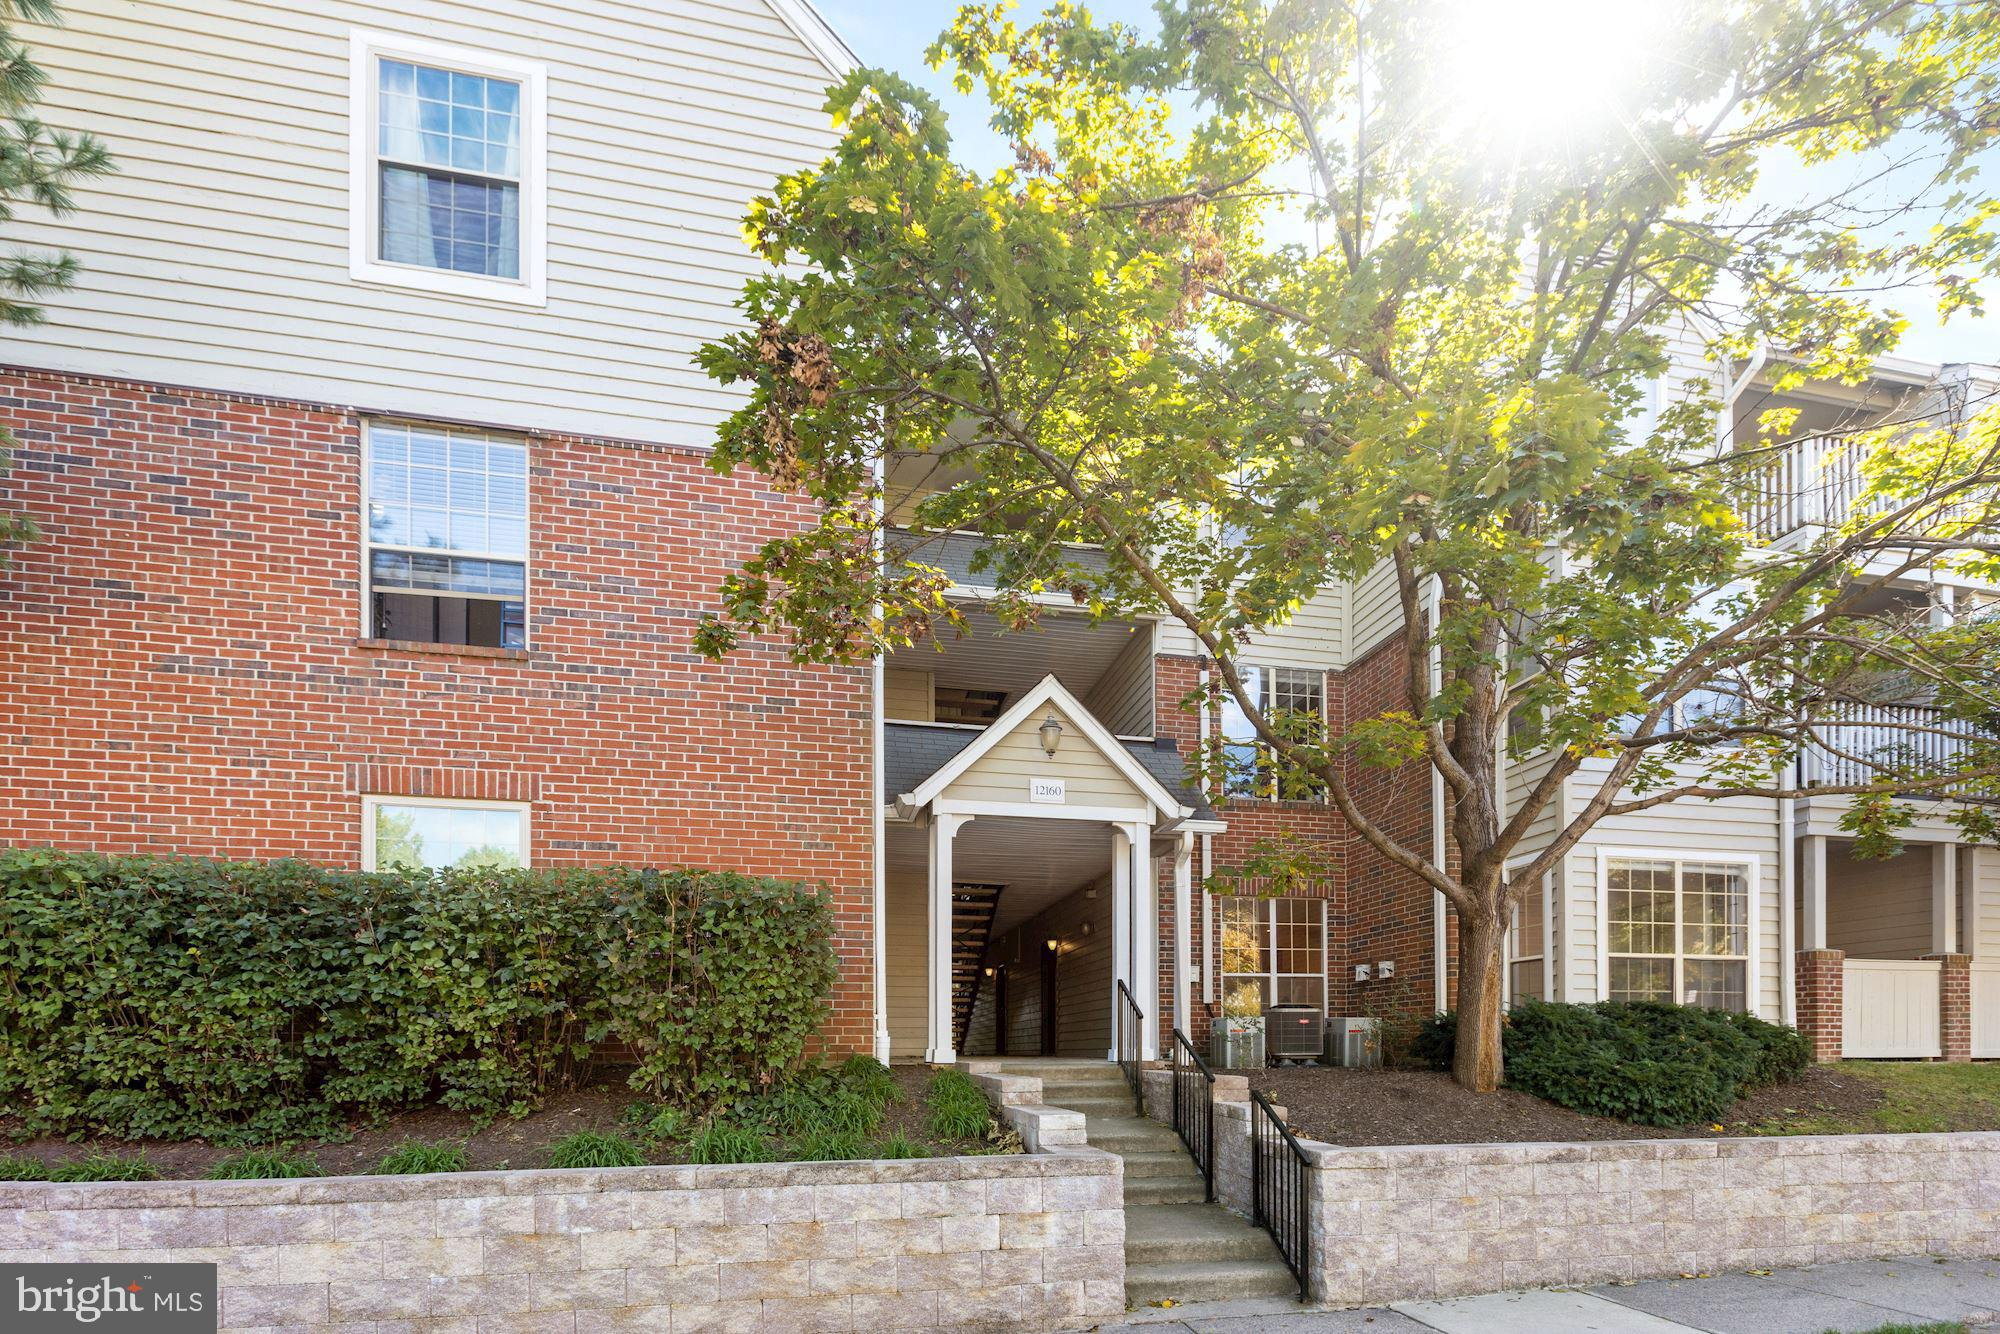 Move right into this two bedroom, one bath condo in Penderbrook Square! Just off Route 50 at West Ox Road, this conveniently located gem offers many updates including new carpet and LVP throughout. The spacious living room features a wood burning fireplace and built-ins. Enjoy a renovated kitchen with new granite counters and new stainless steel appliances. The master bedroom features a large walk-in closet and attached bath. Step from the living room to a second bedroom or home office that opens to a private balcony with storage closet. Amenities abound at Penderbrook Square with a swimming pool, golf course, fitness room, tennis courts, basketball courts, playgrounds. All this with reserved parking and easy access to I-66, Fairfax County Parkway, Fair Oaks Mall and Fair Lakes shops, dining and entertainment!